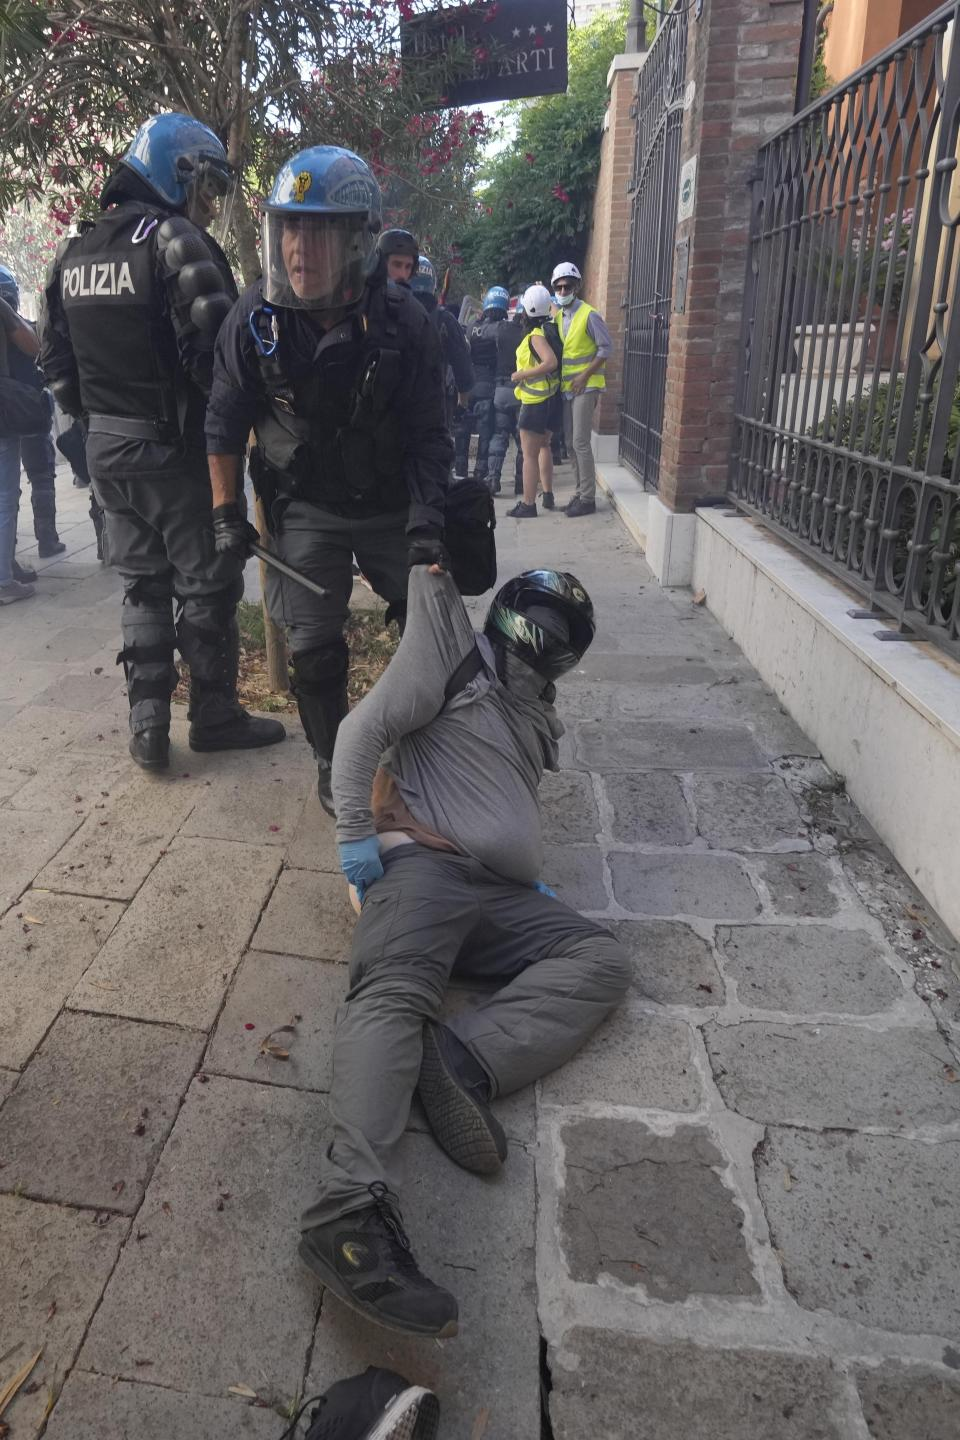 A demonstrator is blocked by an Italian policemen during clashes broke out between demonstrators and Italian Policemen in riot gears on the occasion of a protest against the G20 Economy and Finance ministers and Central bank governors' meeting in Venice, Italy, Saturday, July 10, 2021. (AP Photo/Luca Bruno)